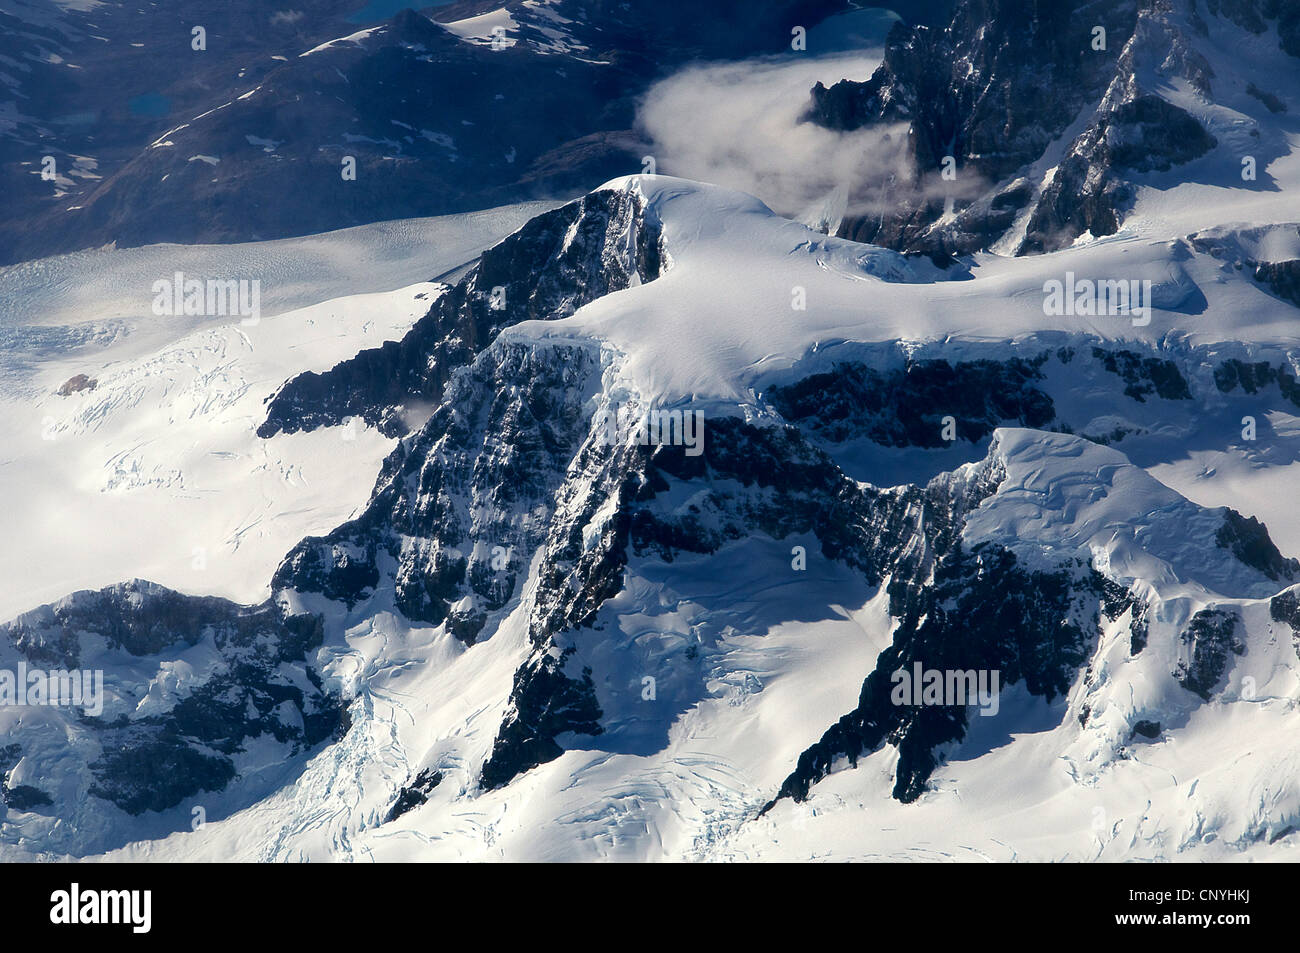 Aerial view snowcapped mountains Andes Range Patagonia Chile - Stock Image